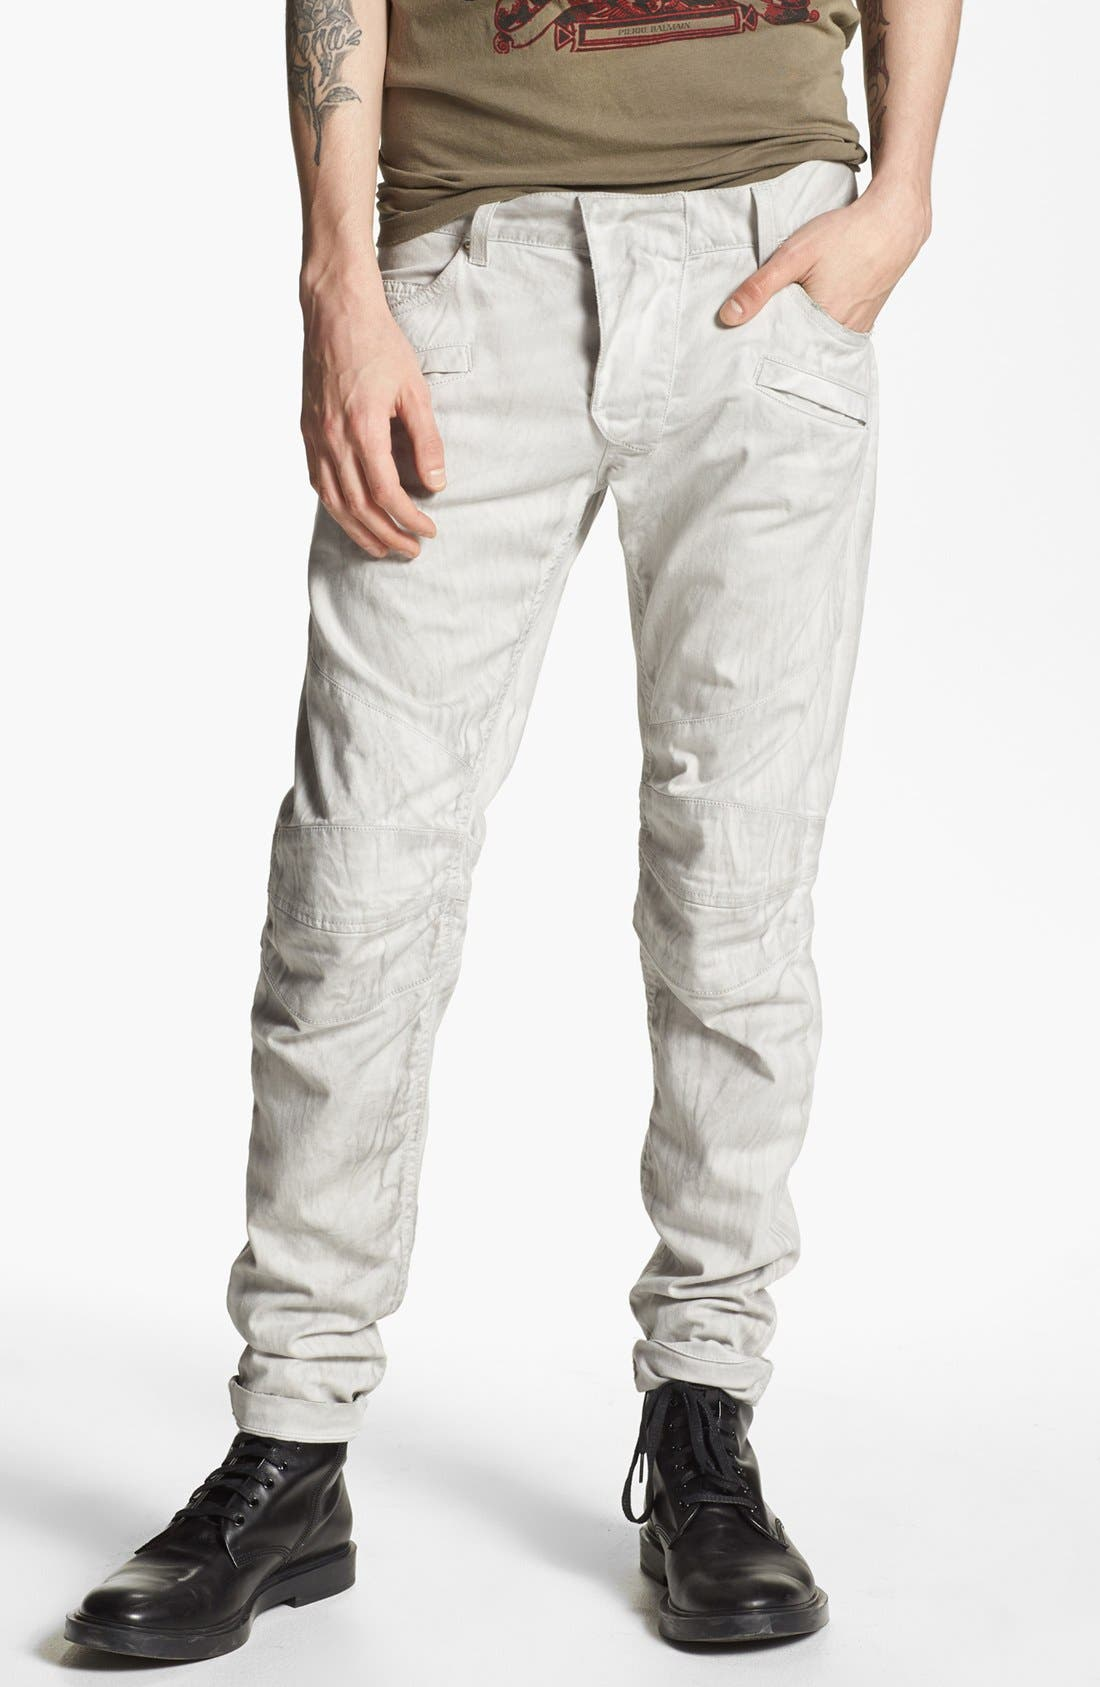 Alternate Image 1 Selected - Pierre Balmain Slim Fit Jeans (Off White) (Online Only)